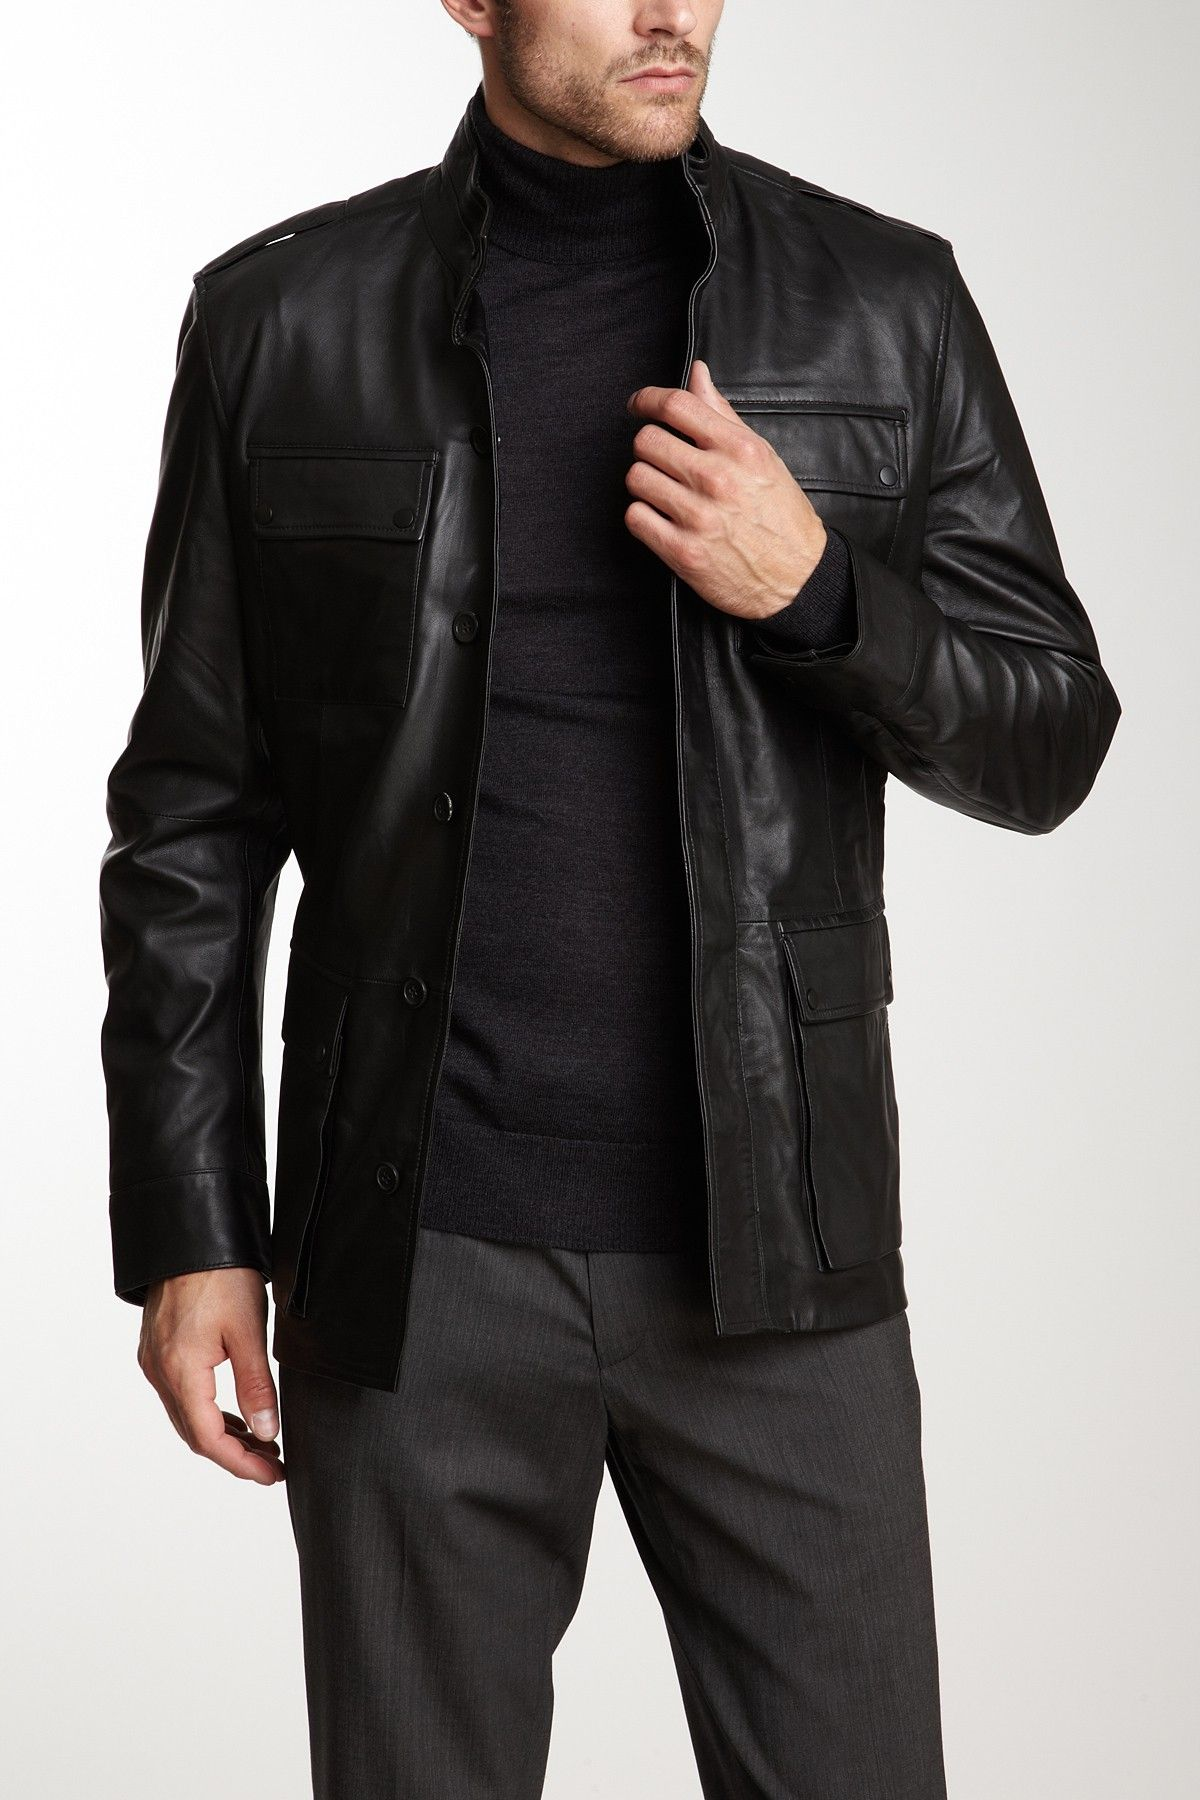 Elie Tahari Brooks Luxe Leather Jacket Leather Jacket Mens Outfits Masculine Clothing [ 1800 x 1200 Pixel ]